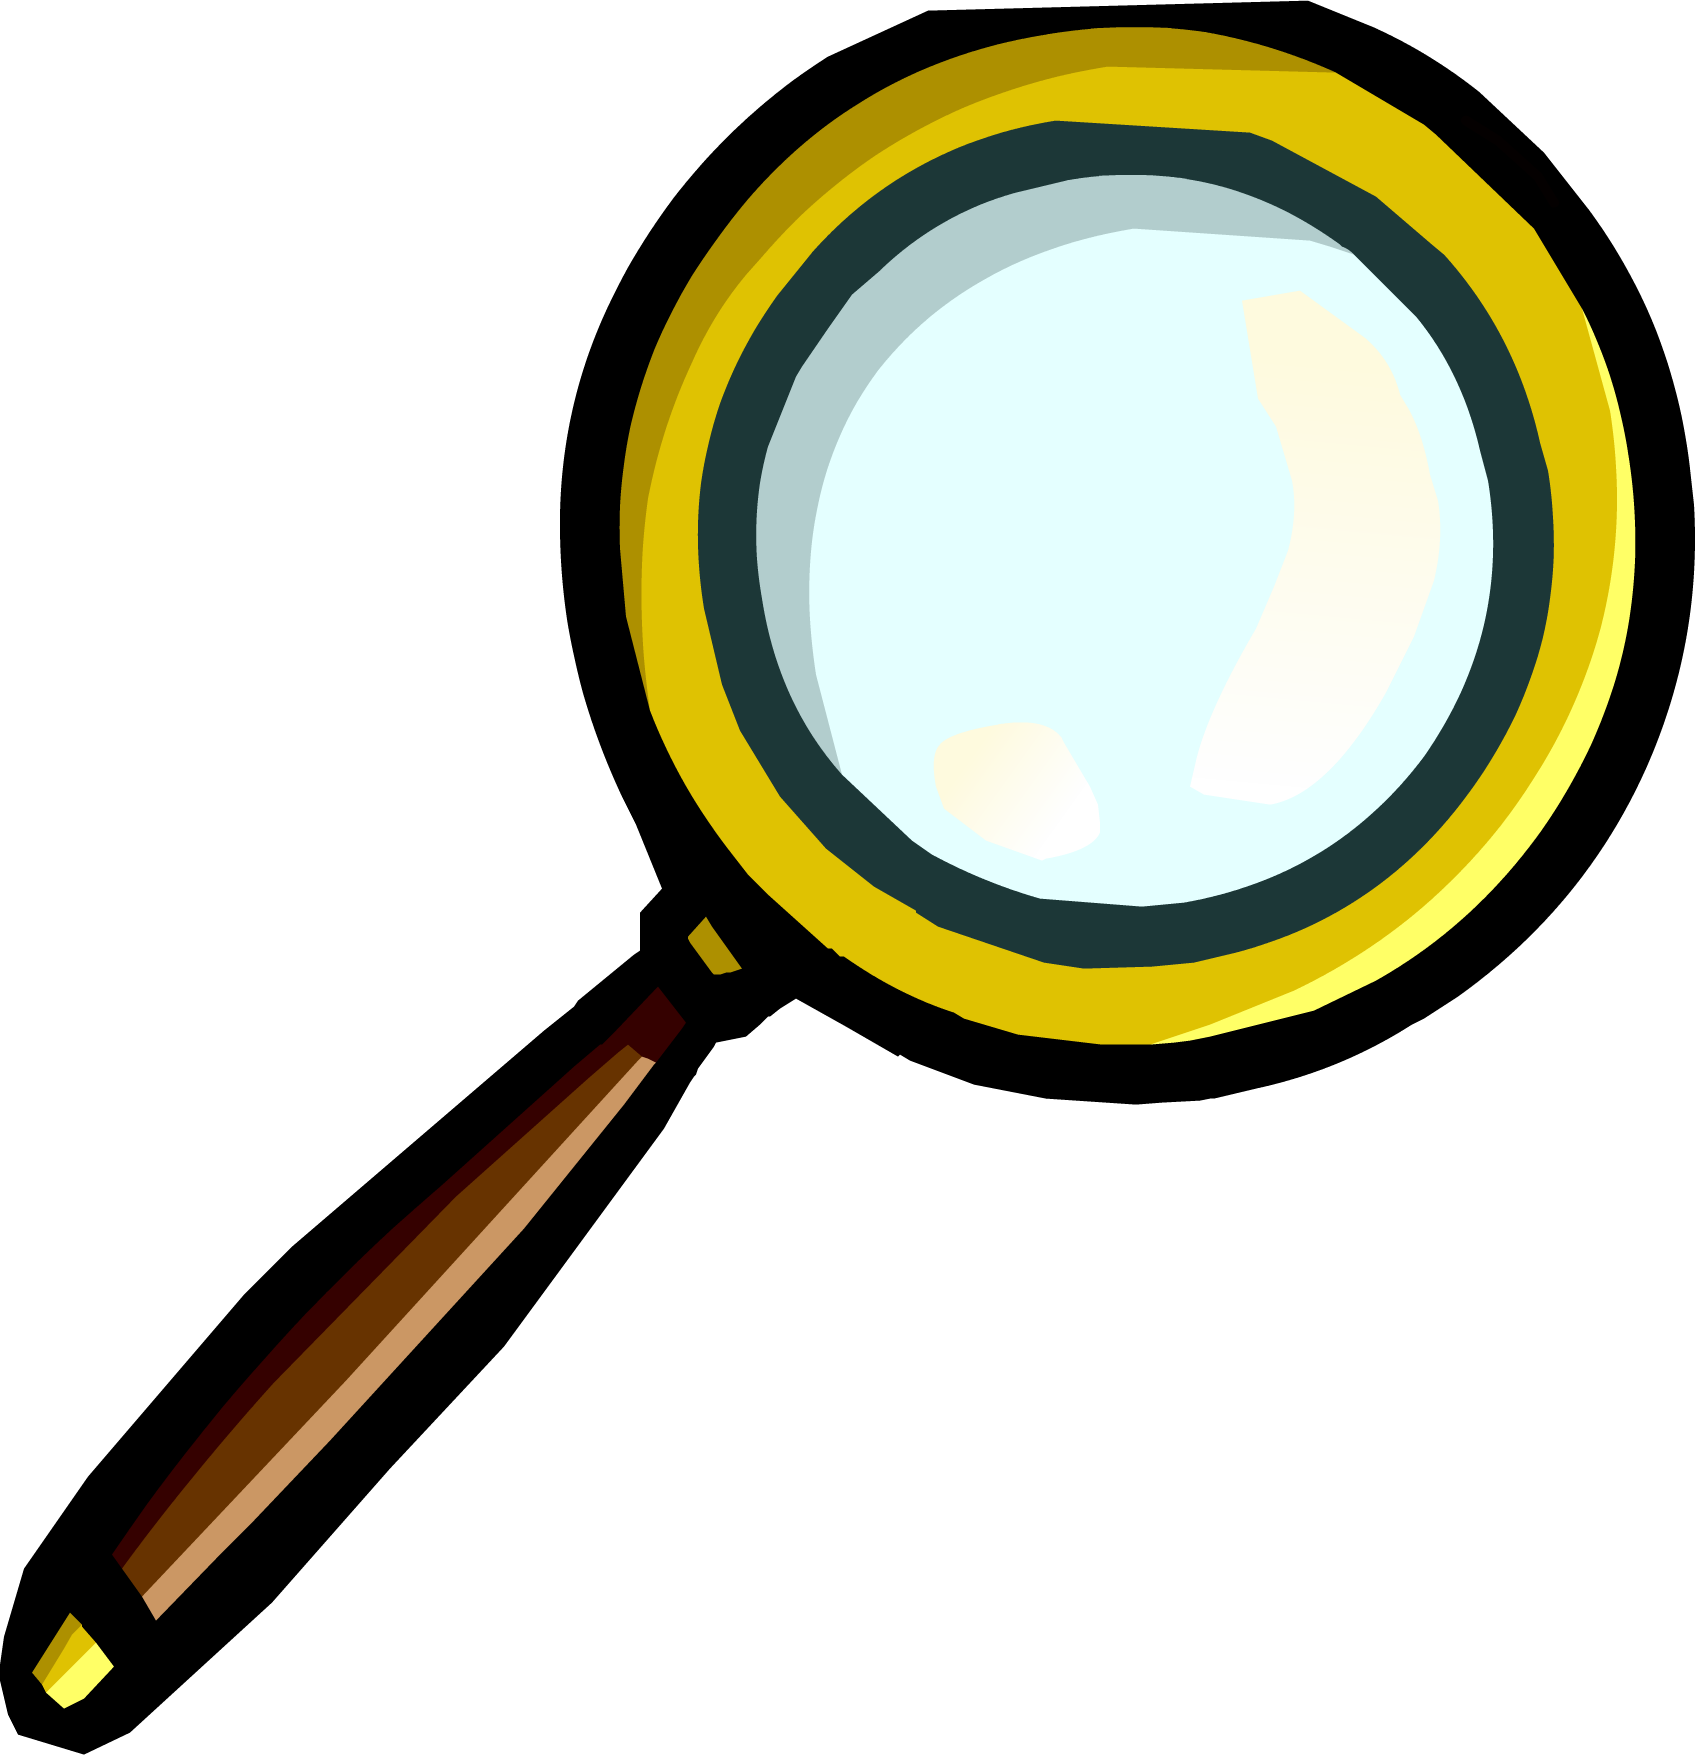 Image magnifying glass png. Mystery clipart magnifier